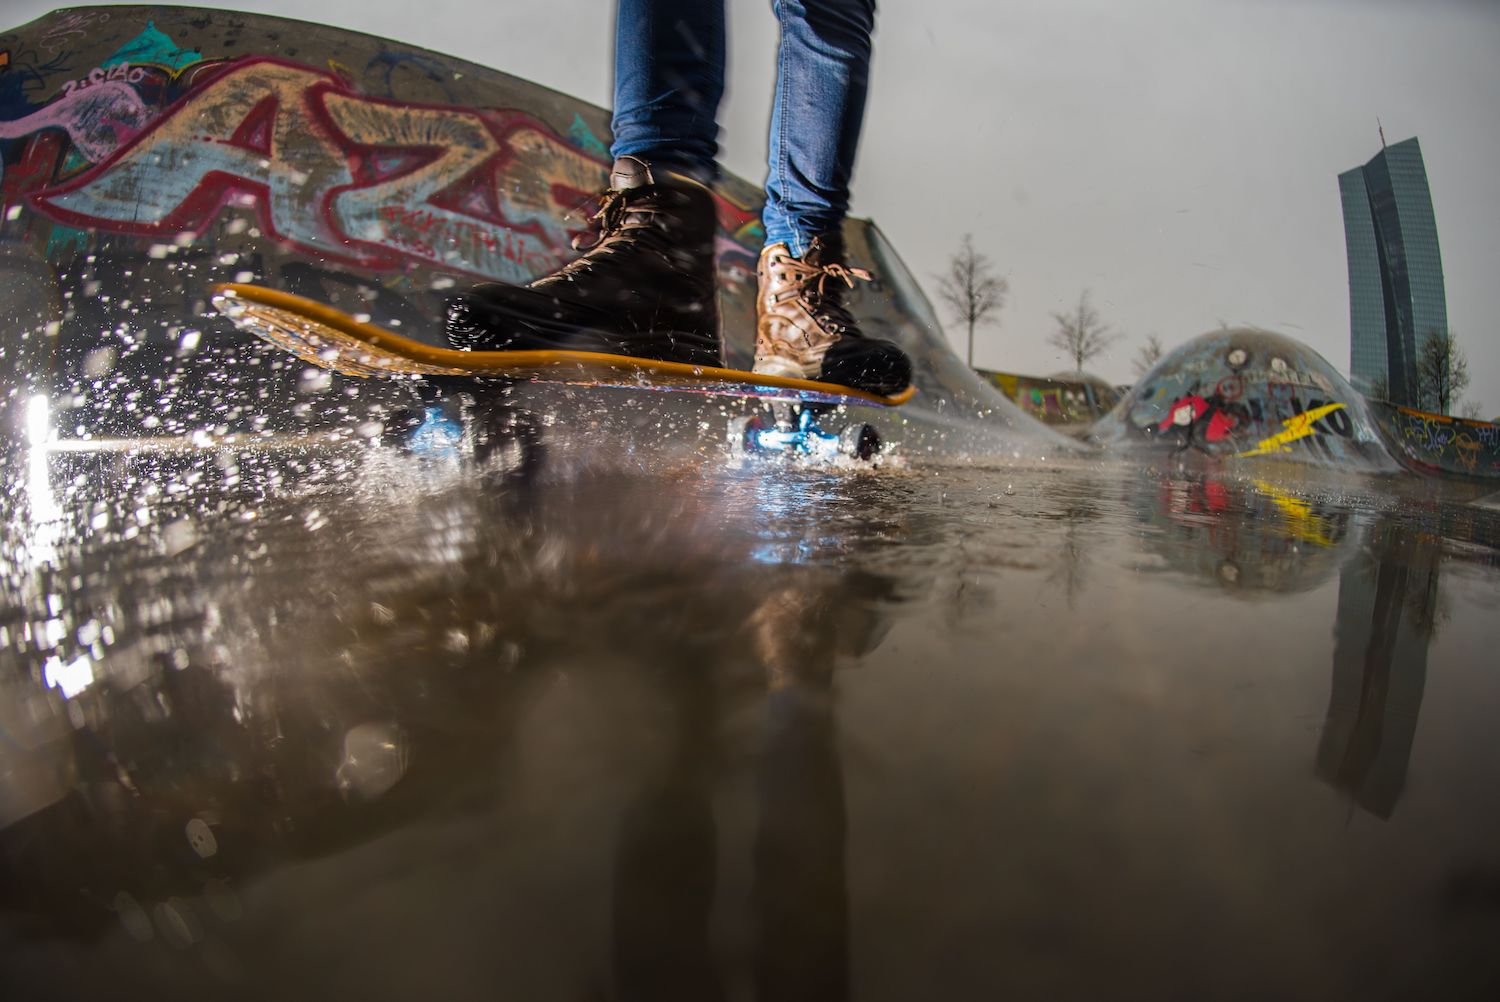 A picture taken with a fish-eye lens shows a youth skaking at a skate park on a rainy day on Apr. 13, 2018 in Frankfurt am Main. / AFP PHOTO / dpa / Andreas Arnold / Germany OUT        (Photo credit should read ANDREAS ARNOLD/AFP/Getty Images)